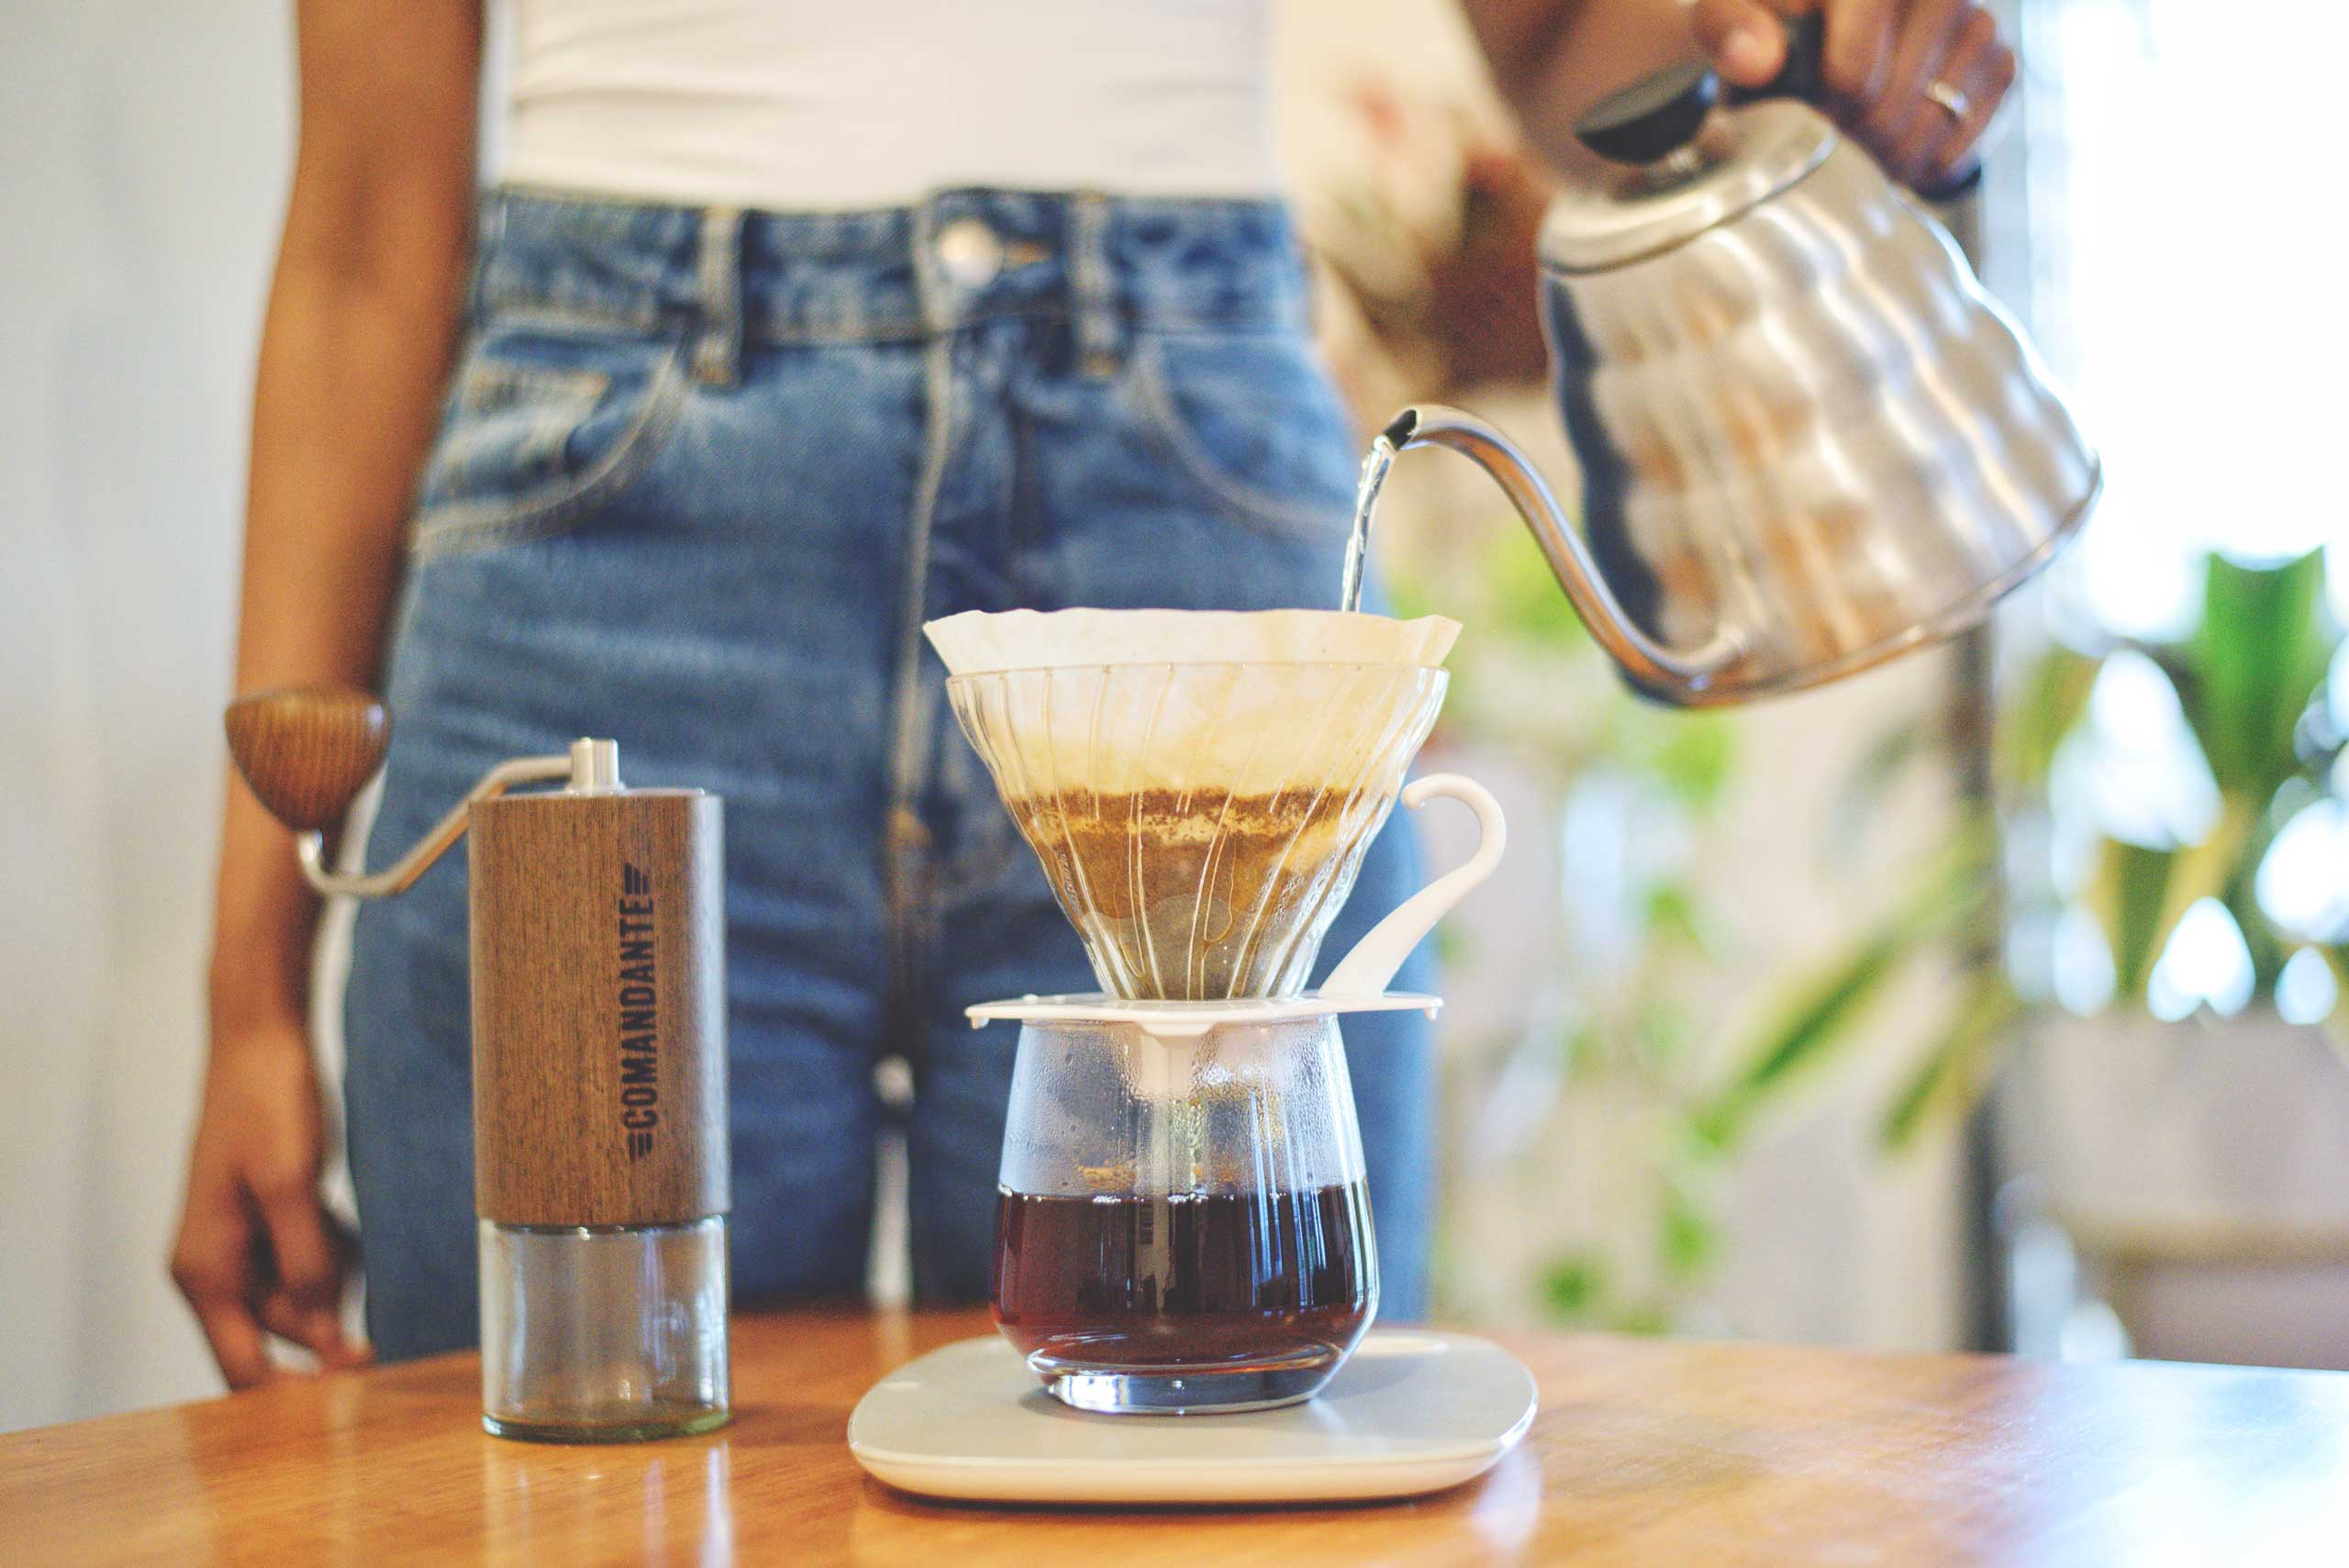 Brewing a V60 pour over coffee